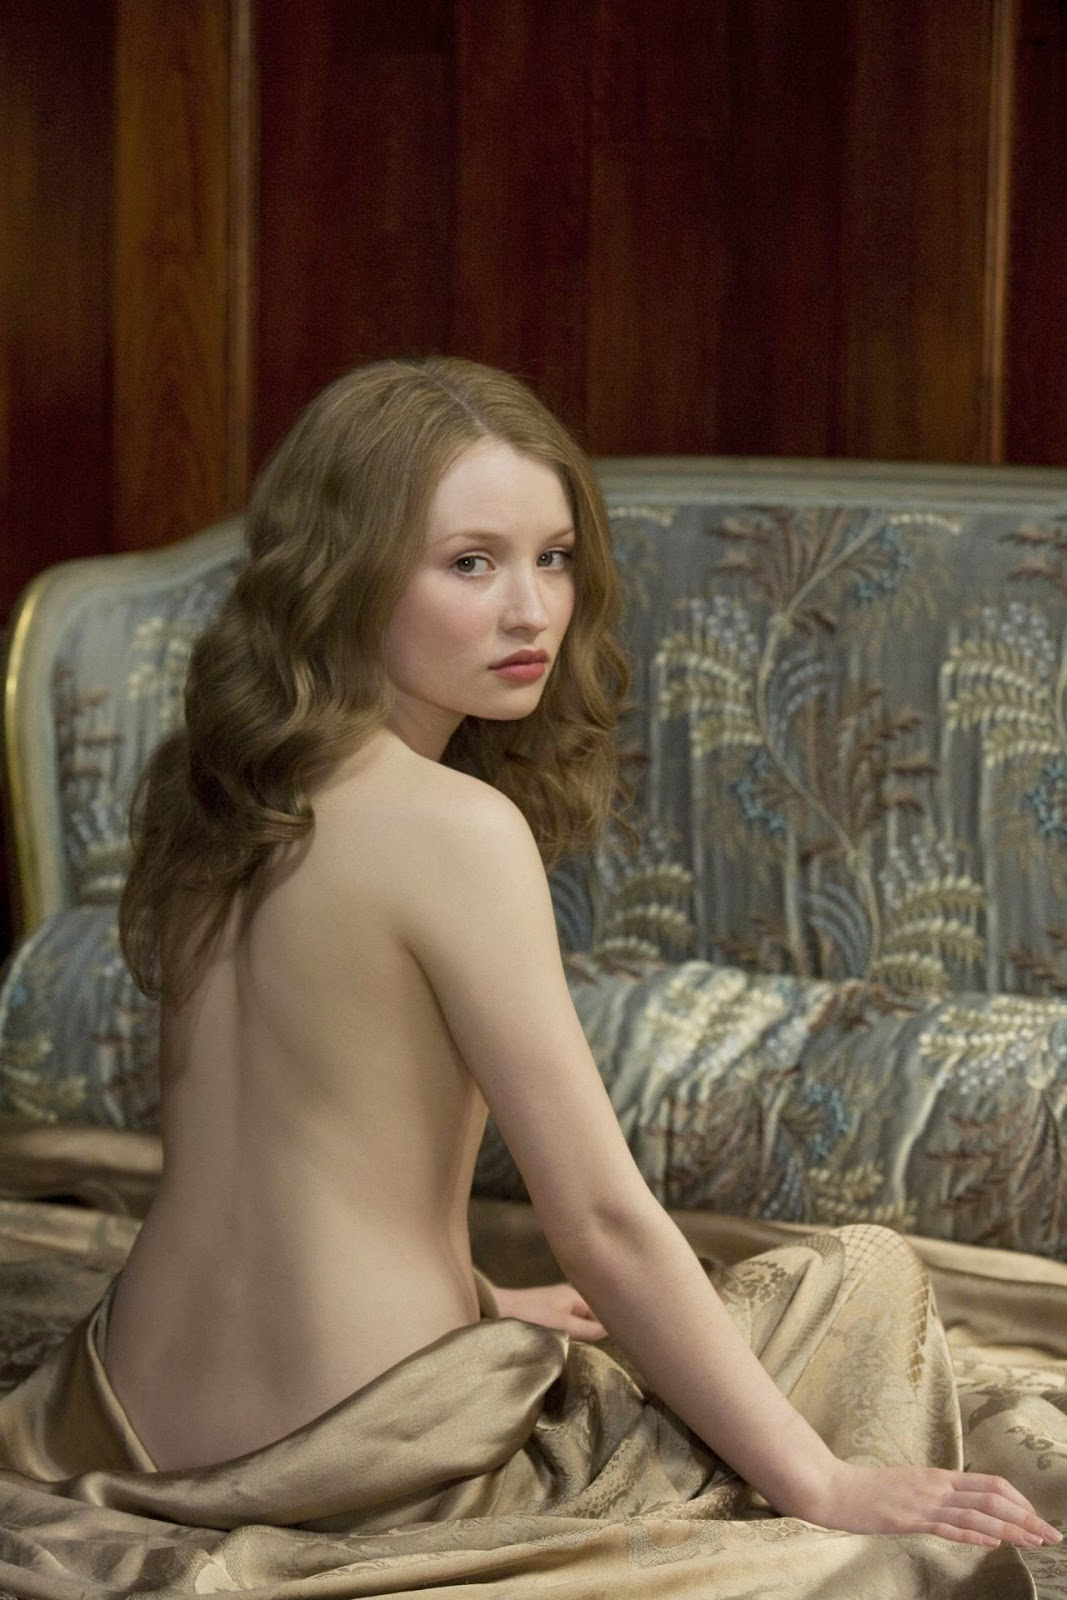 Sleeping Beauty (2011), Emily Browning as Lucy, seductive and sexy.